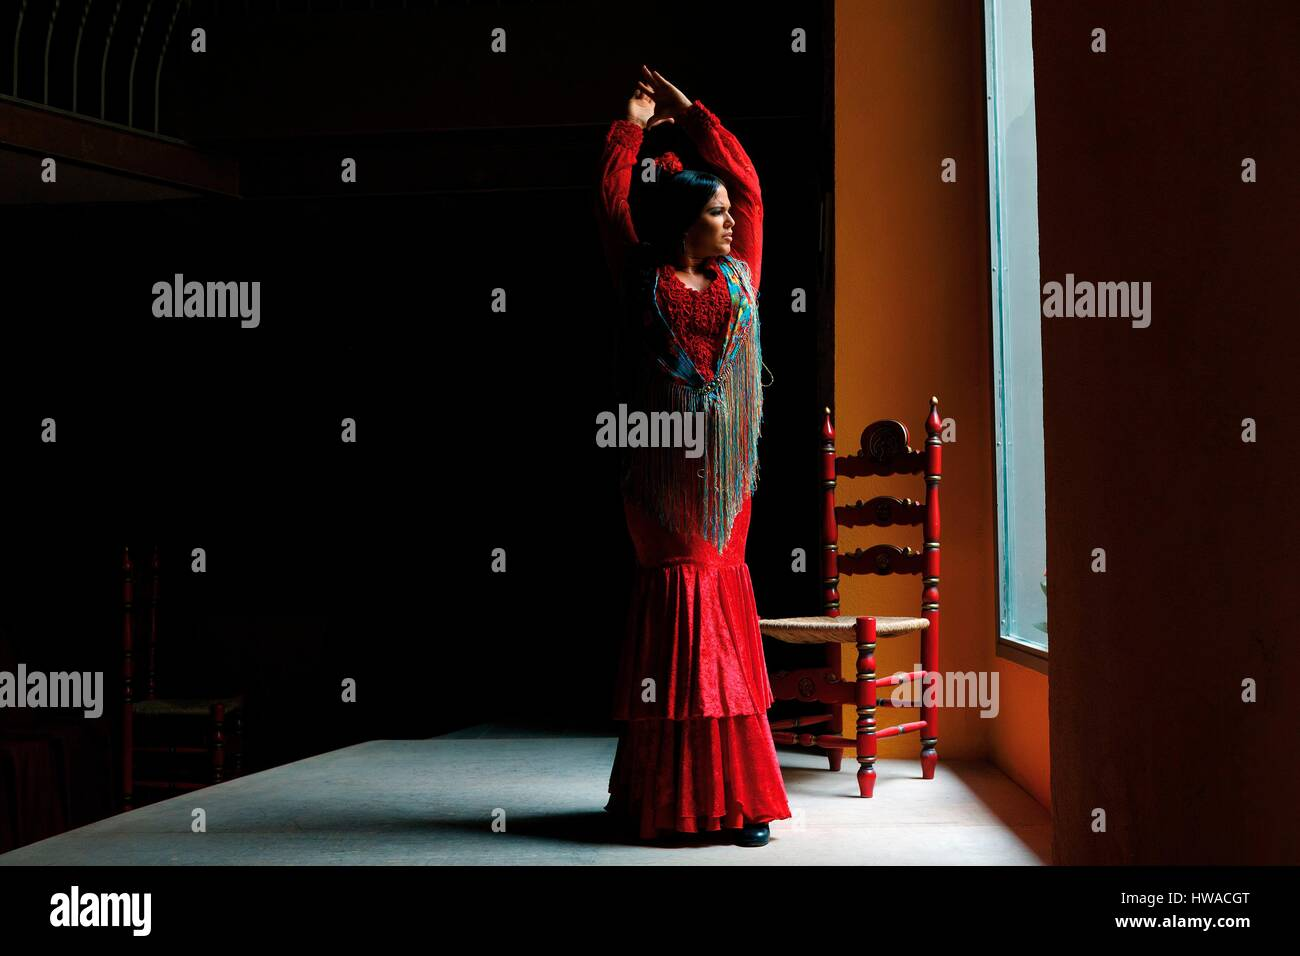 Spain, Andalusia, Sevilla, Cuna street, Casa de la Memoria, flamenco dancer in action - Stock Image